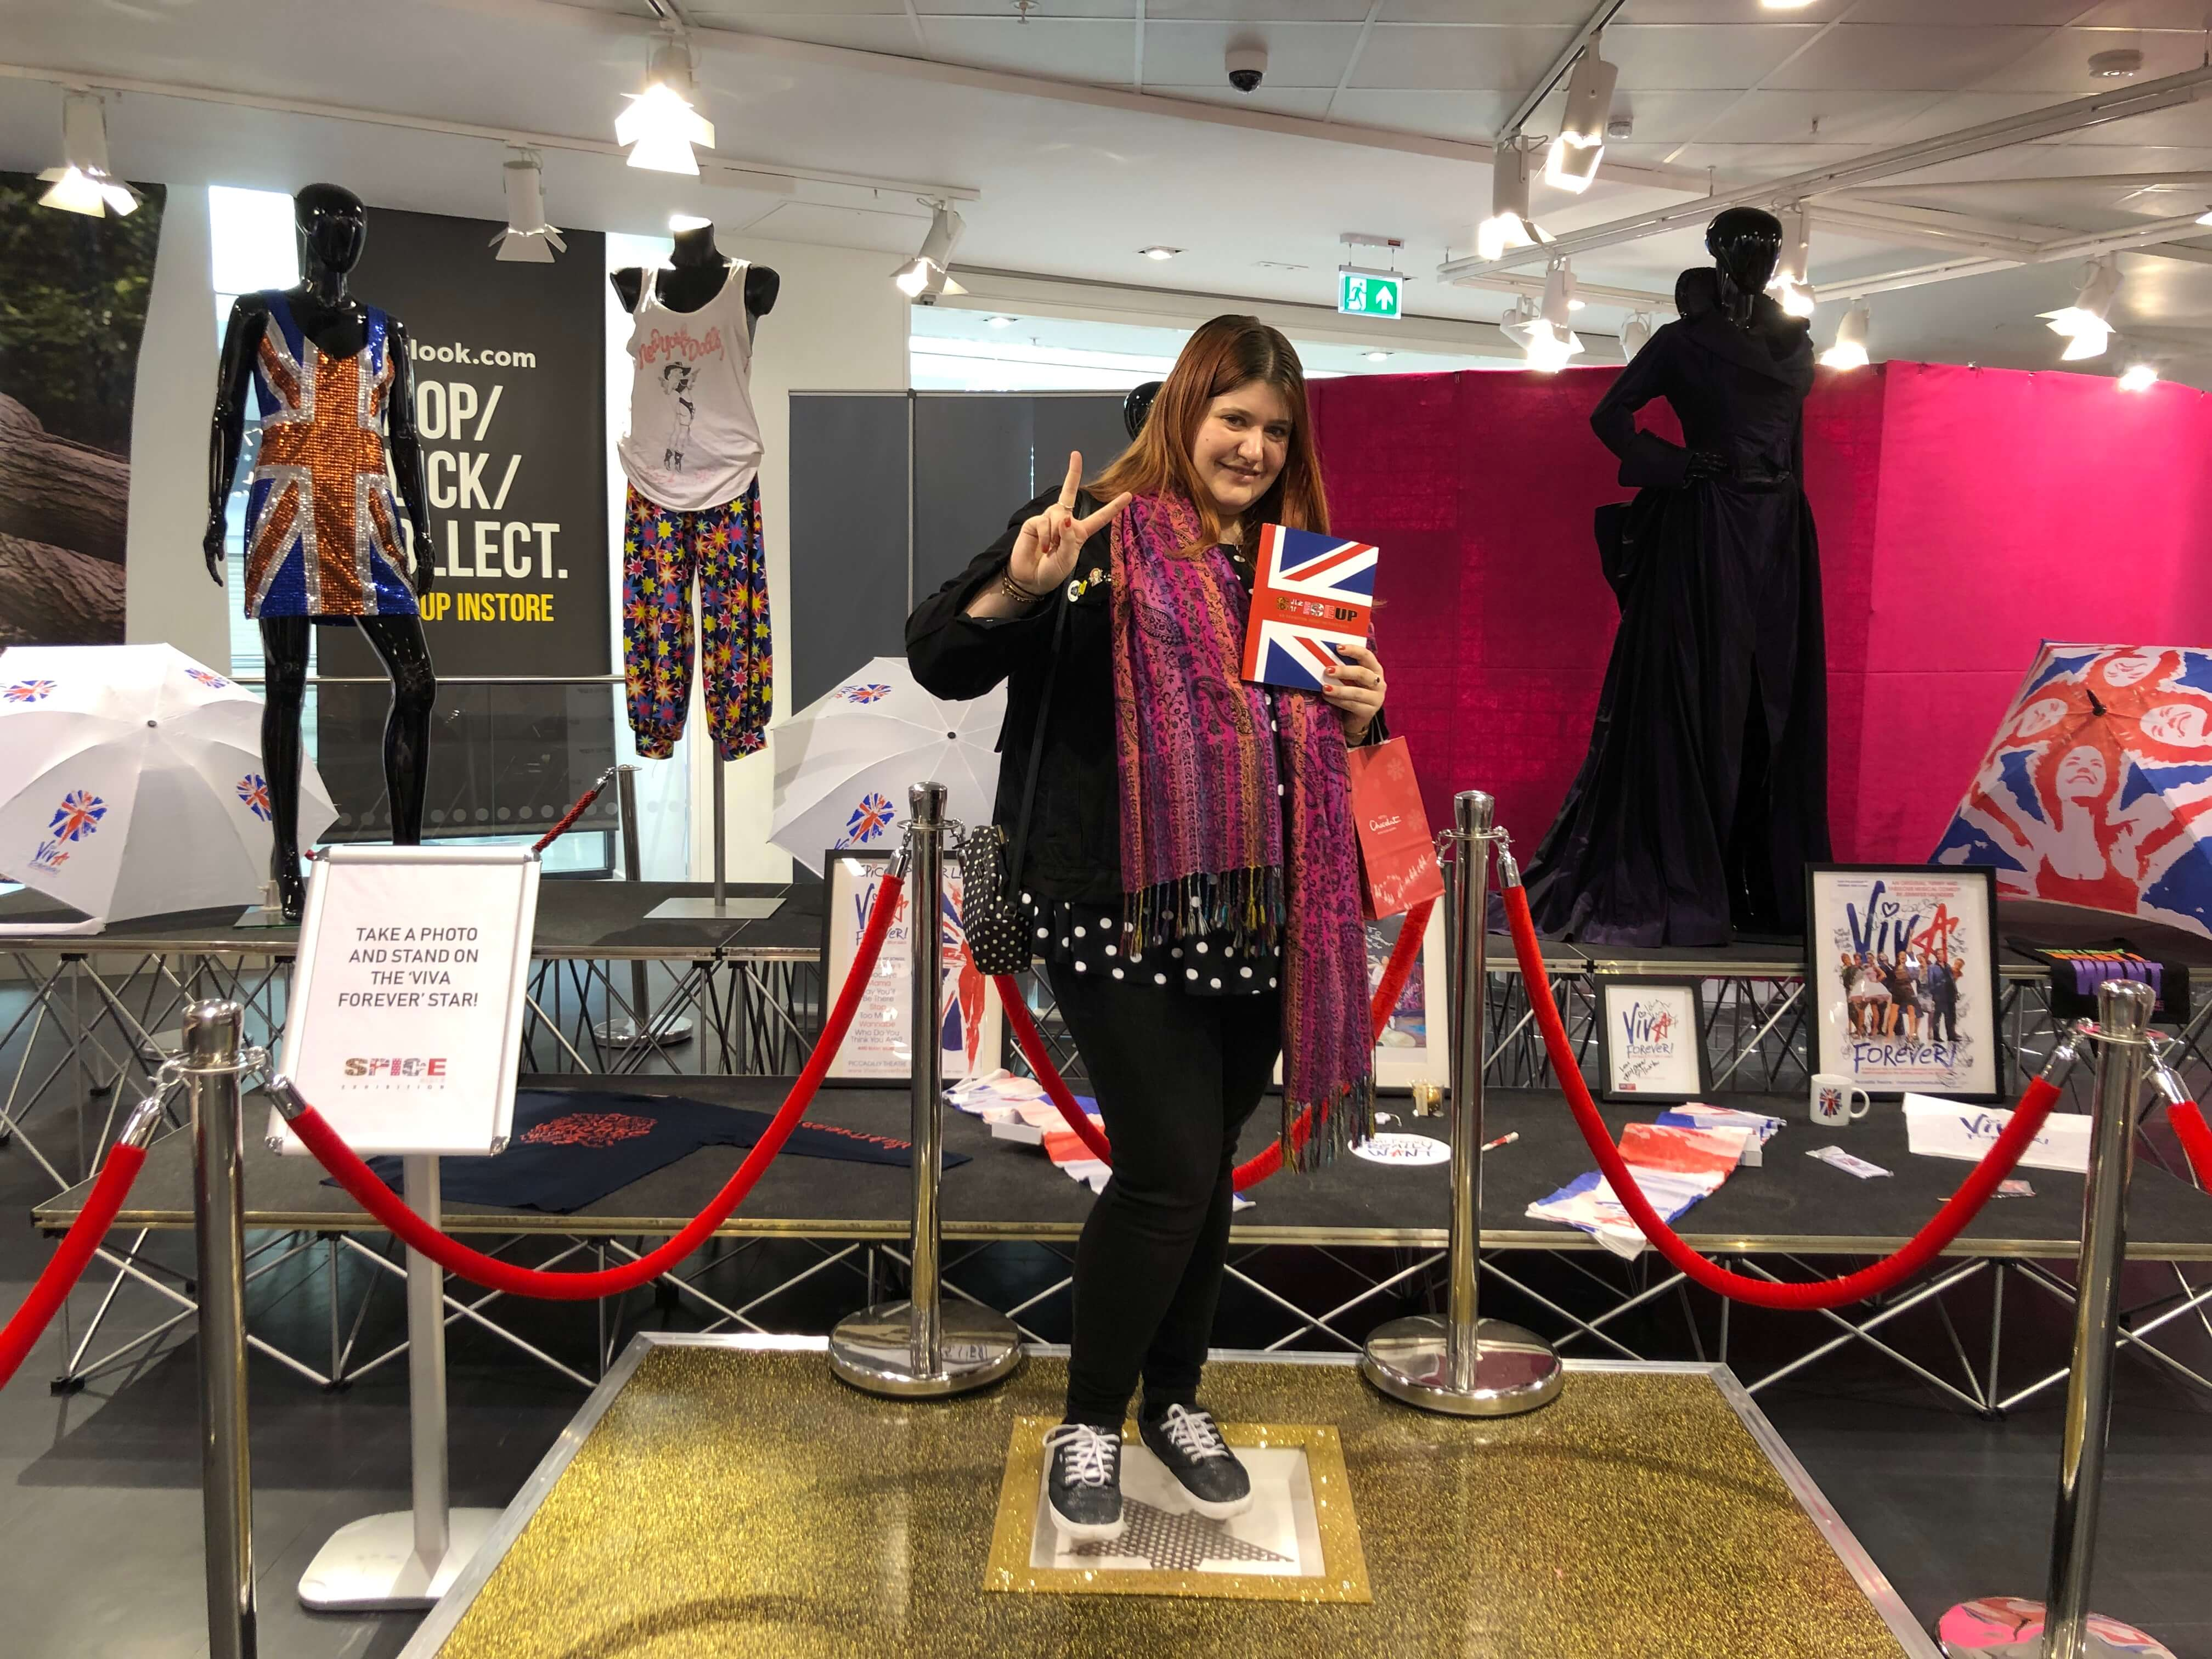 Me at the Spice Girls Exhibition